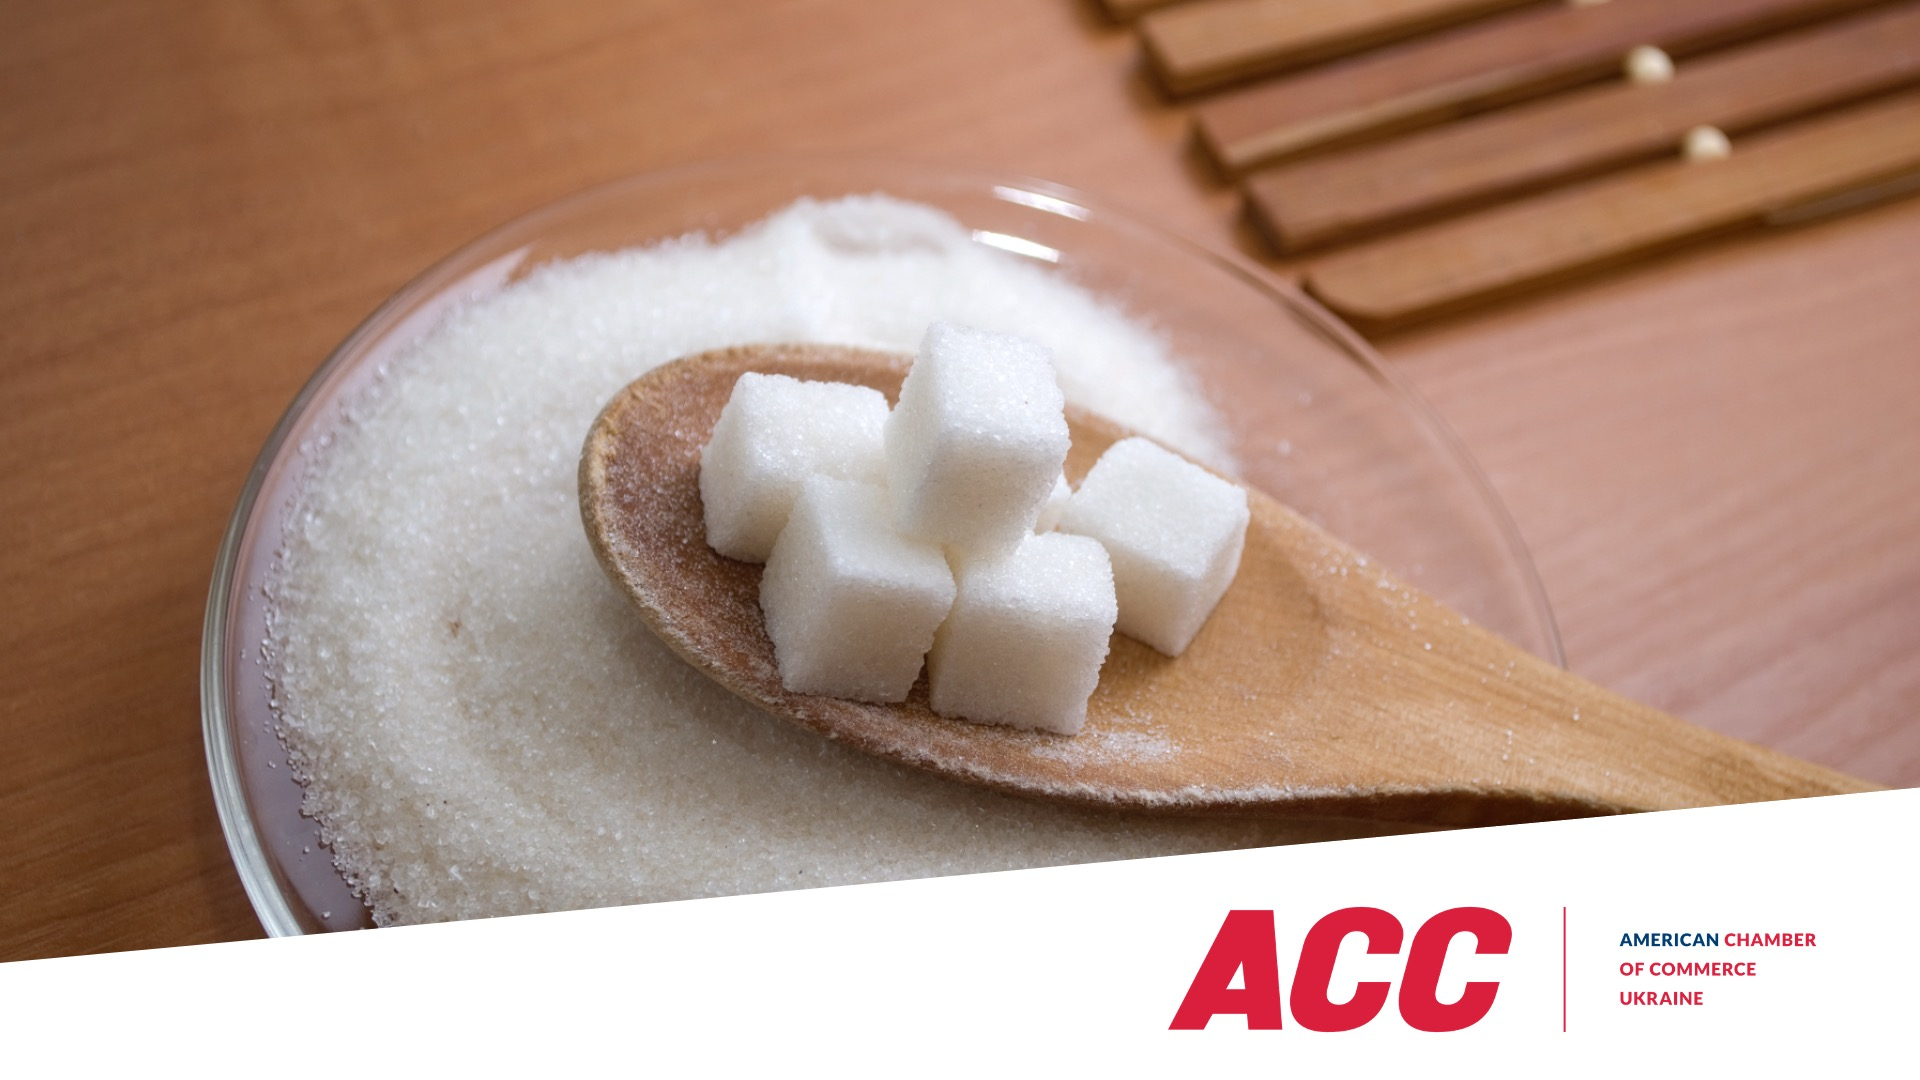 Policy Progress: Ministry for Development of Economy, Trade and Agriculture Developed the Draft Law on Temporary Exemption of White Sugar from Import Duty